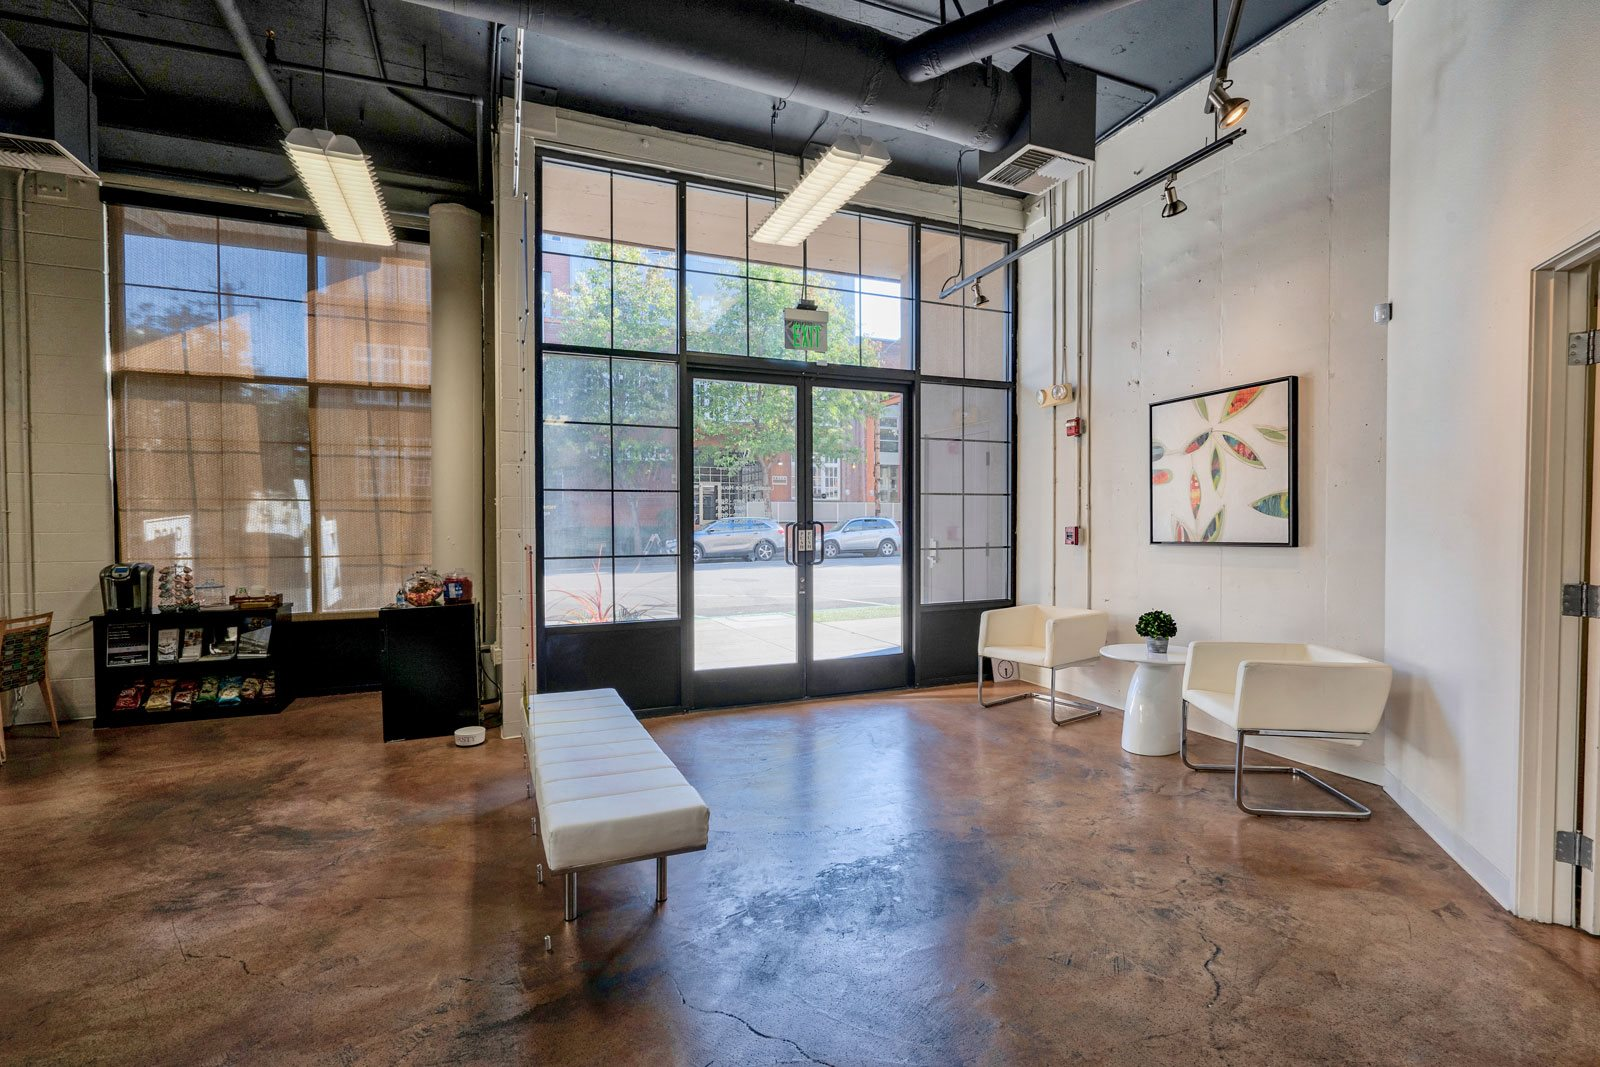 Pet-Friendly Apartment Community with Dog Treats in Office at Allegro at Jack London Square, Oakland, 94607